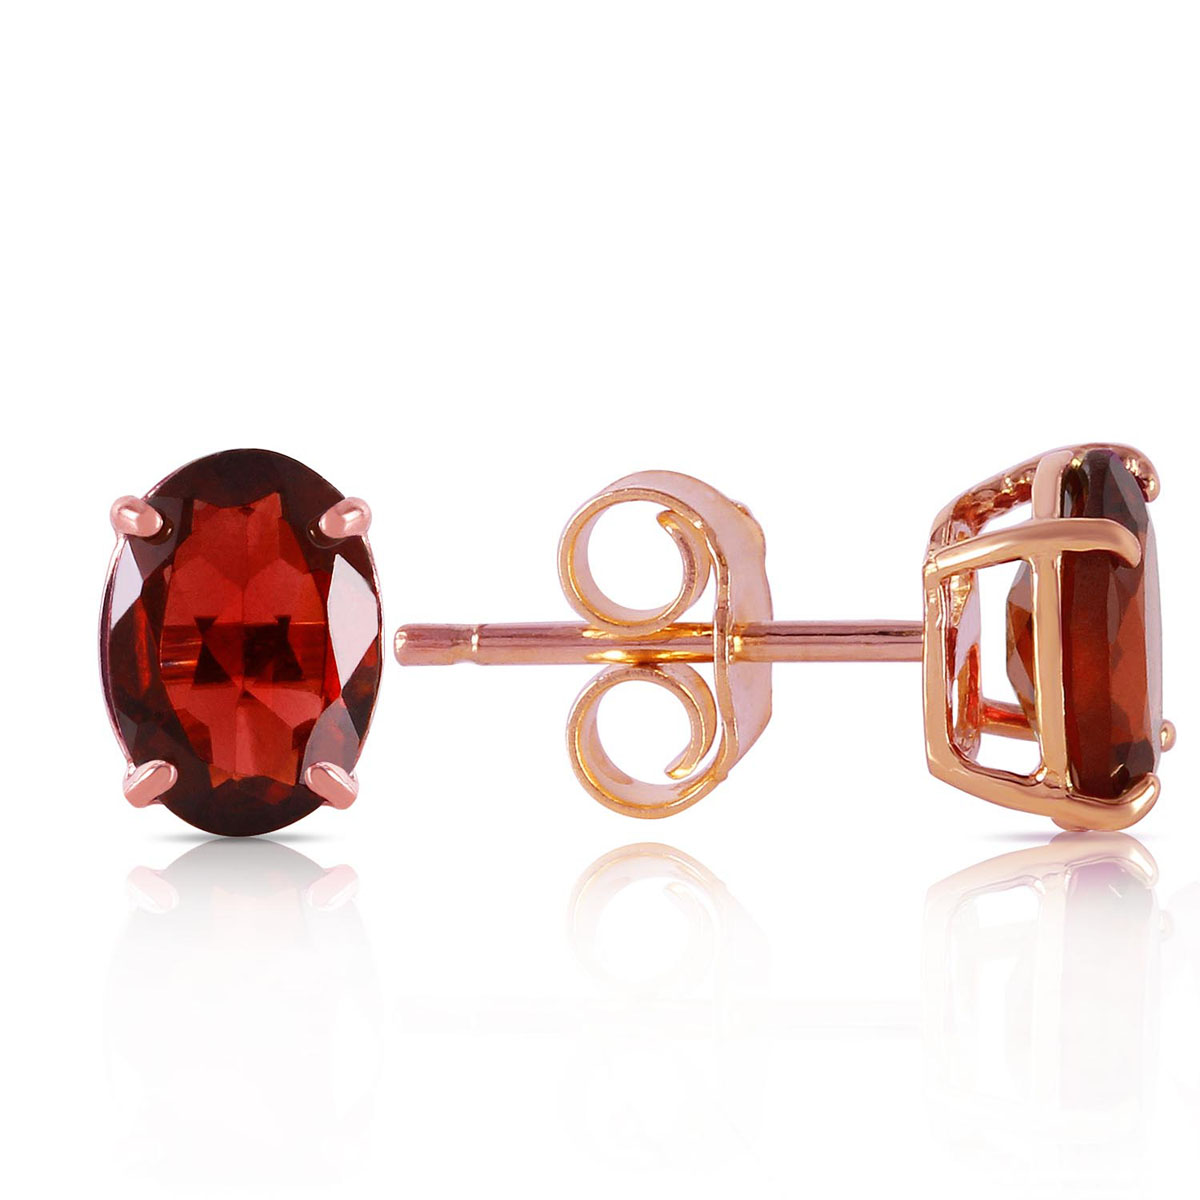 Garnet Stud Earrings 1.8 ctw in 9ct Rose Gold